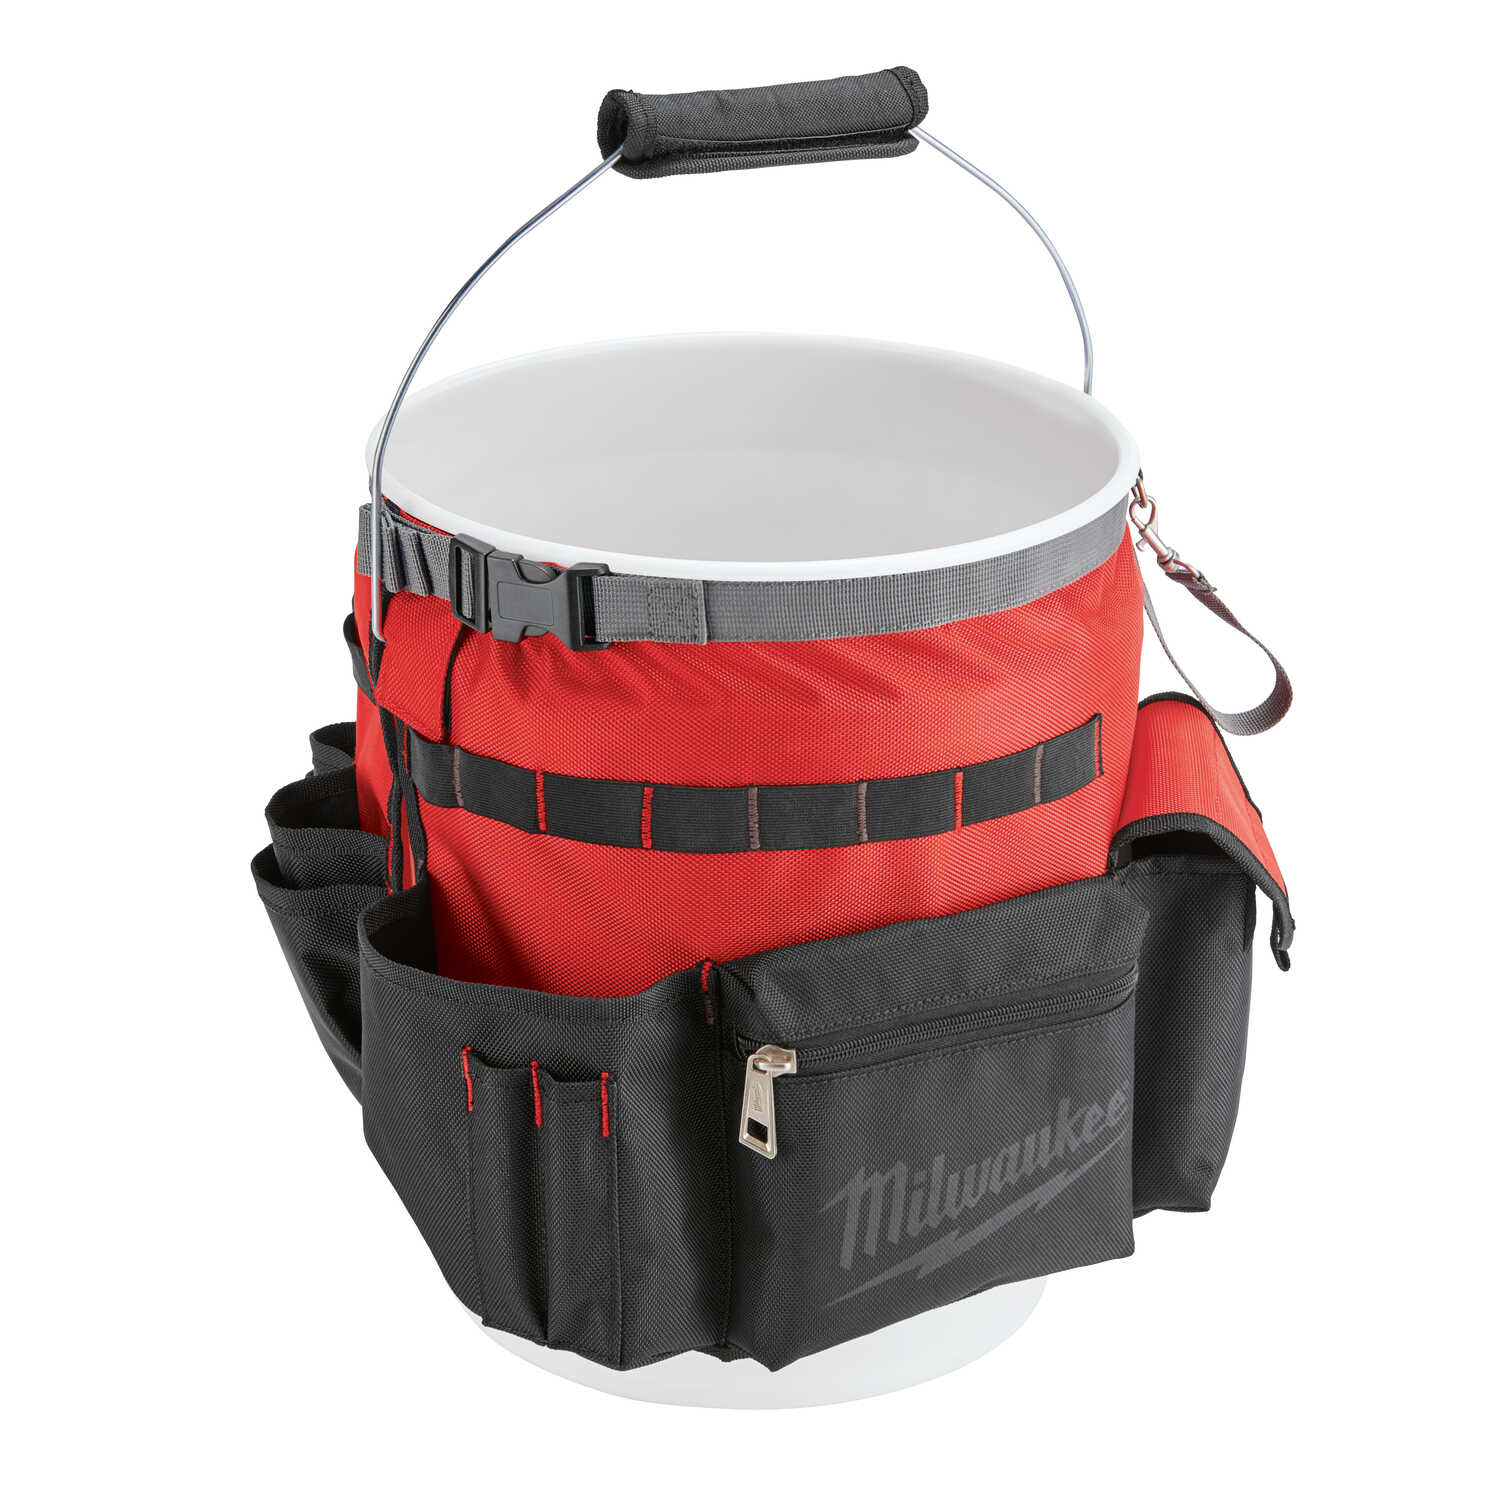 Milwaukee  2.17 in. W x 13.39 in. H Ballistic Nylon  Bucket Organizer  32 pocket Black/Red  1 pc.